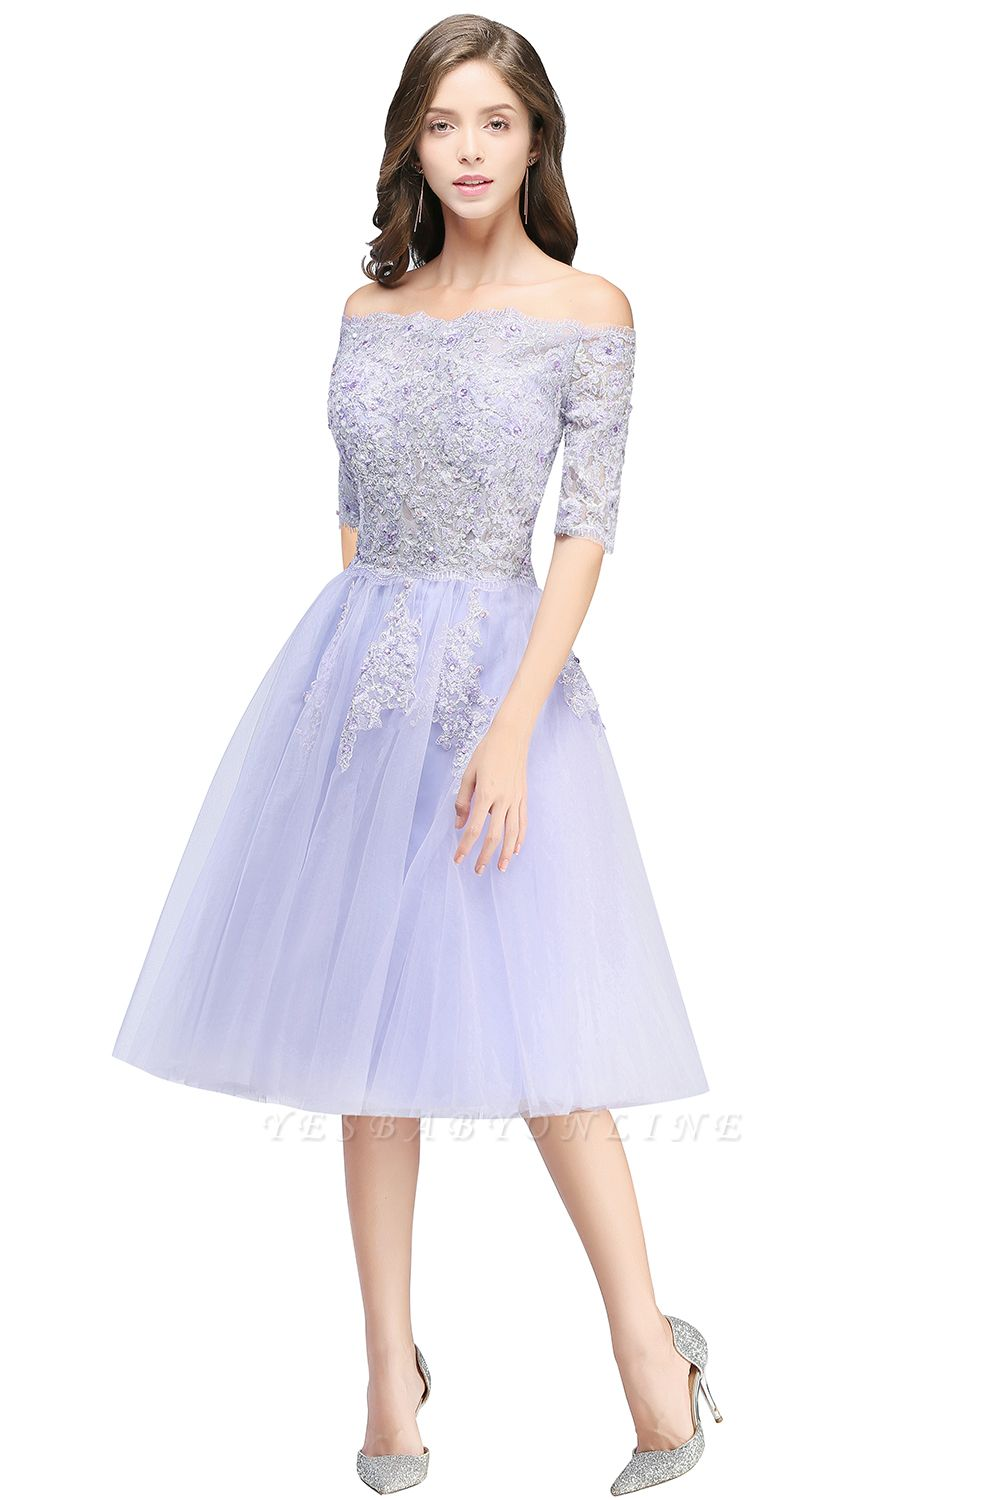 Cheap A-line Short Sleeves Tulle Lace Flower Girl Dress in Stock